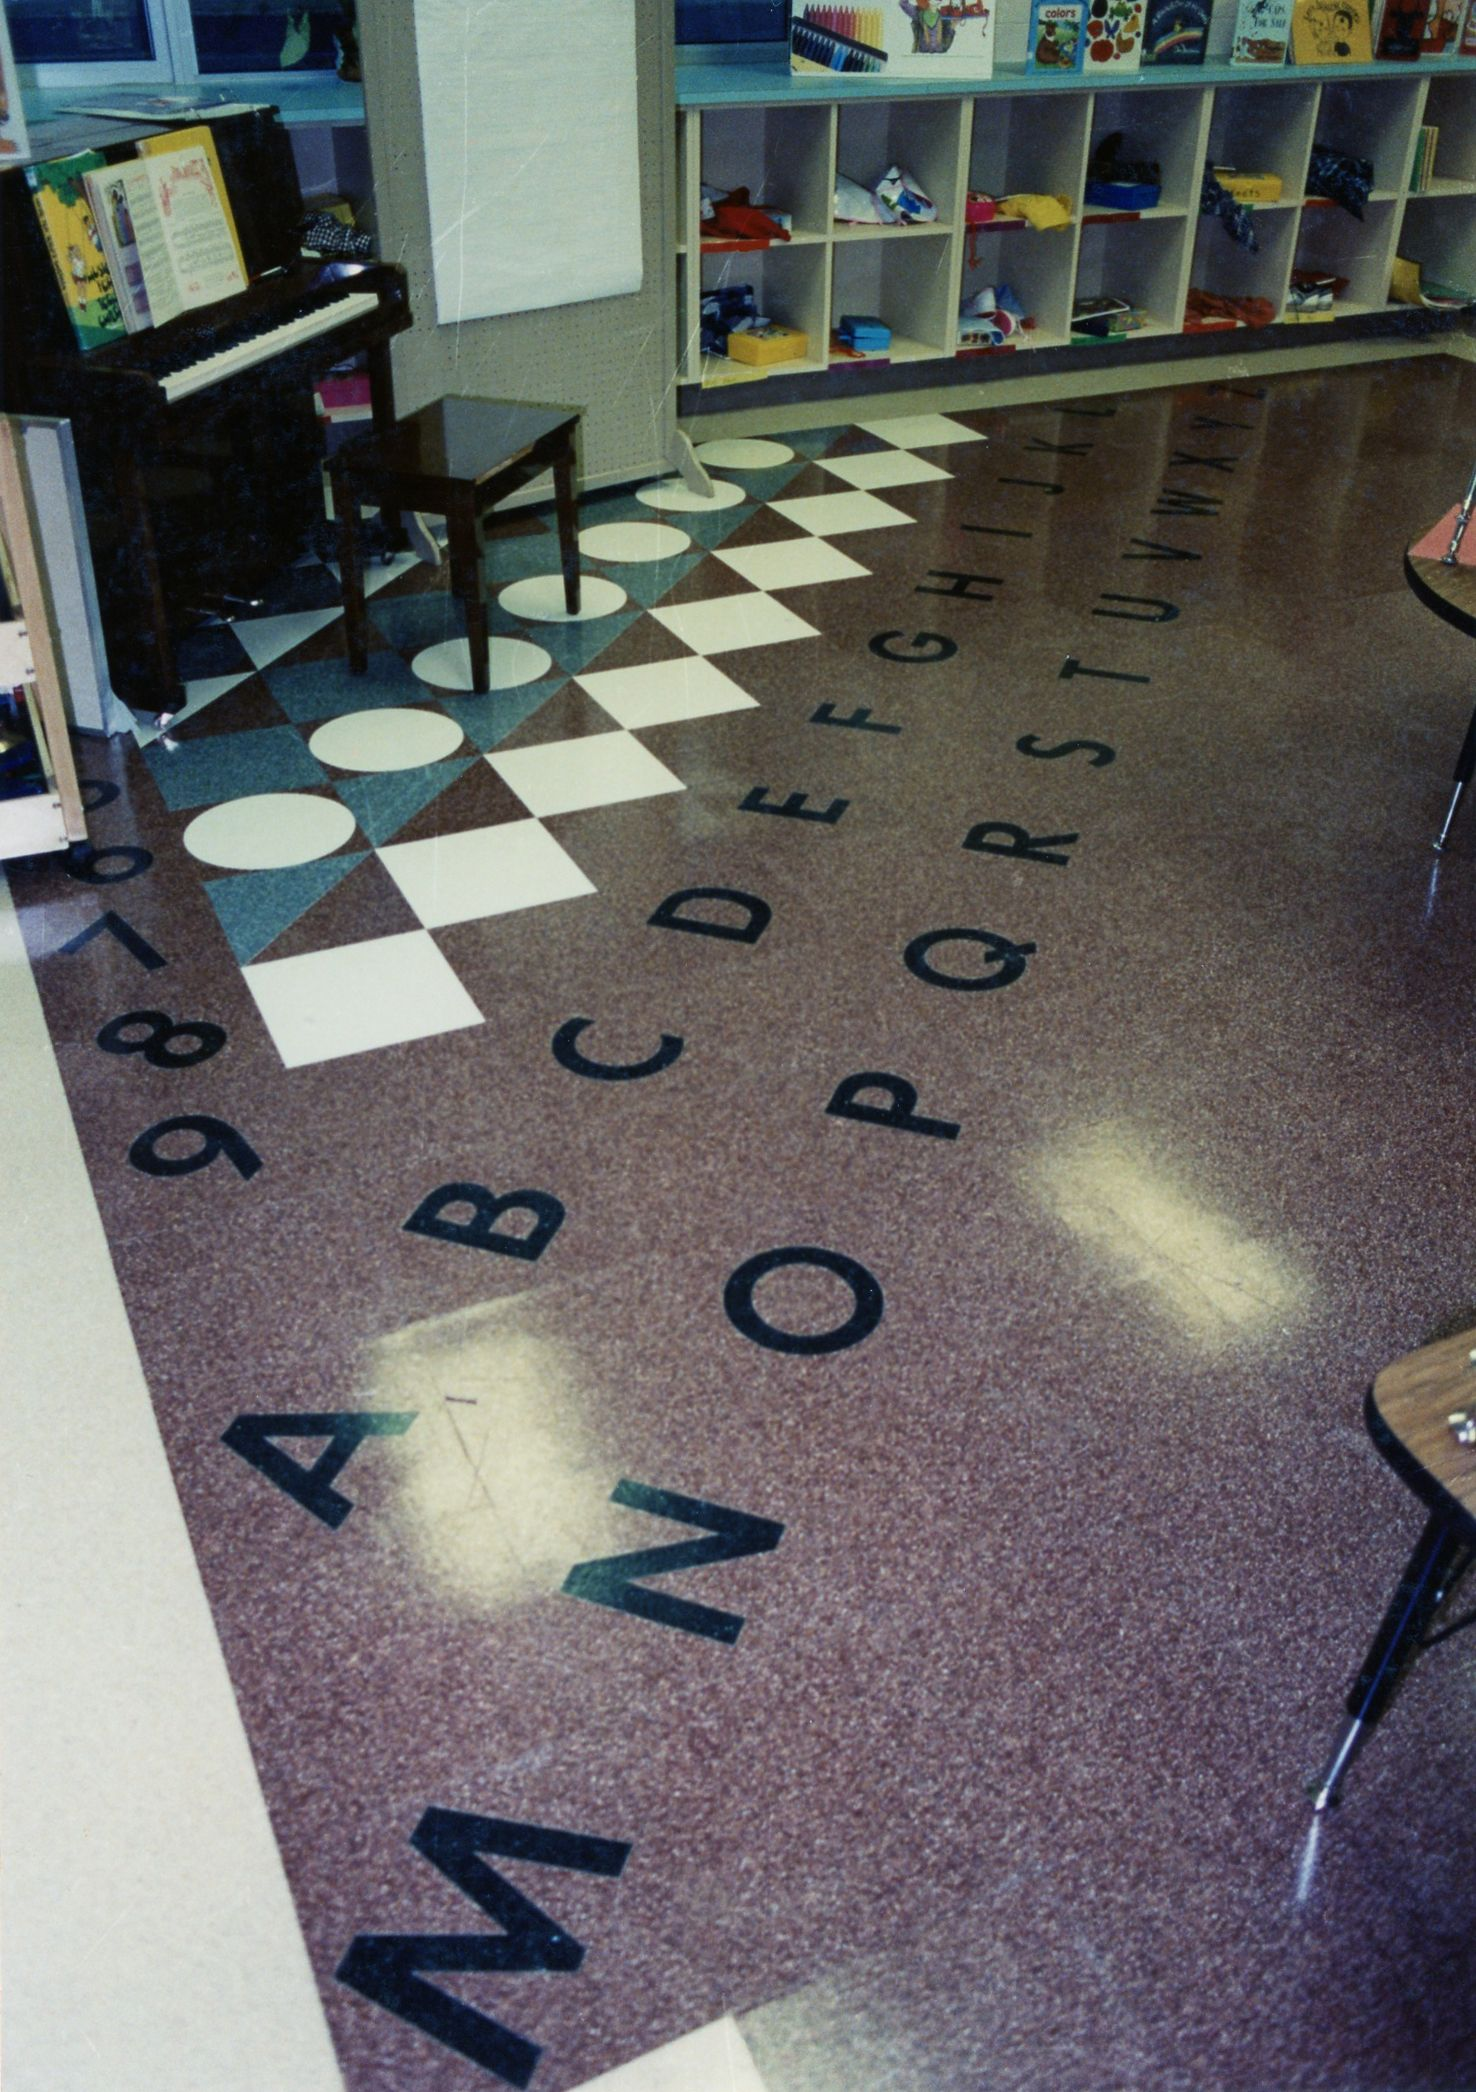 Classroom floor alphabet tiles fritztile terrazzo tile fritztile fritztile manufactures high quality terrazzo floor tile perfect for high traffic area where longevity and low maintenance requirements are essential dailygadgetfo Images